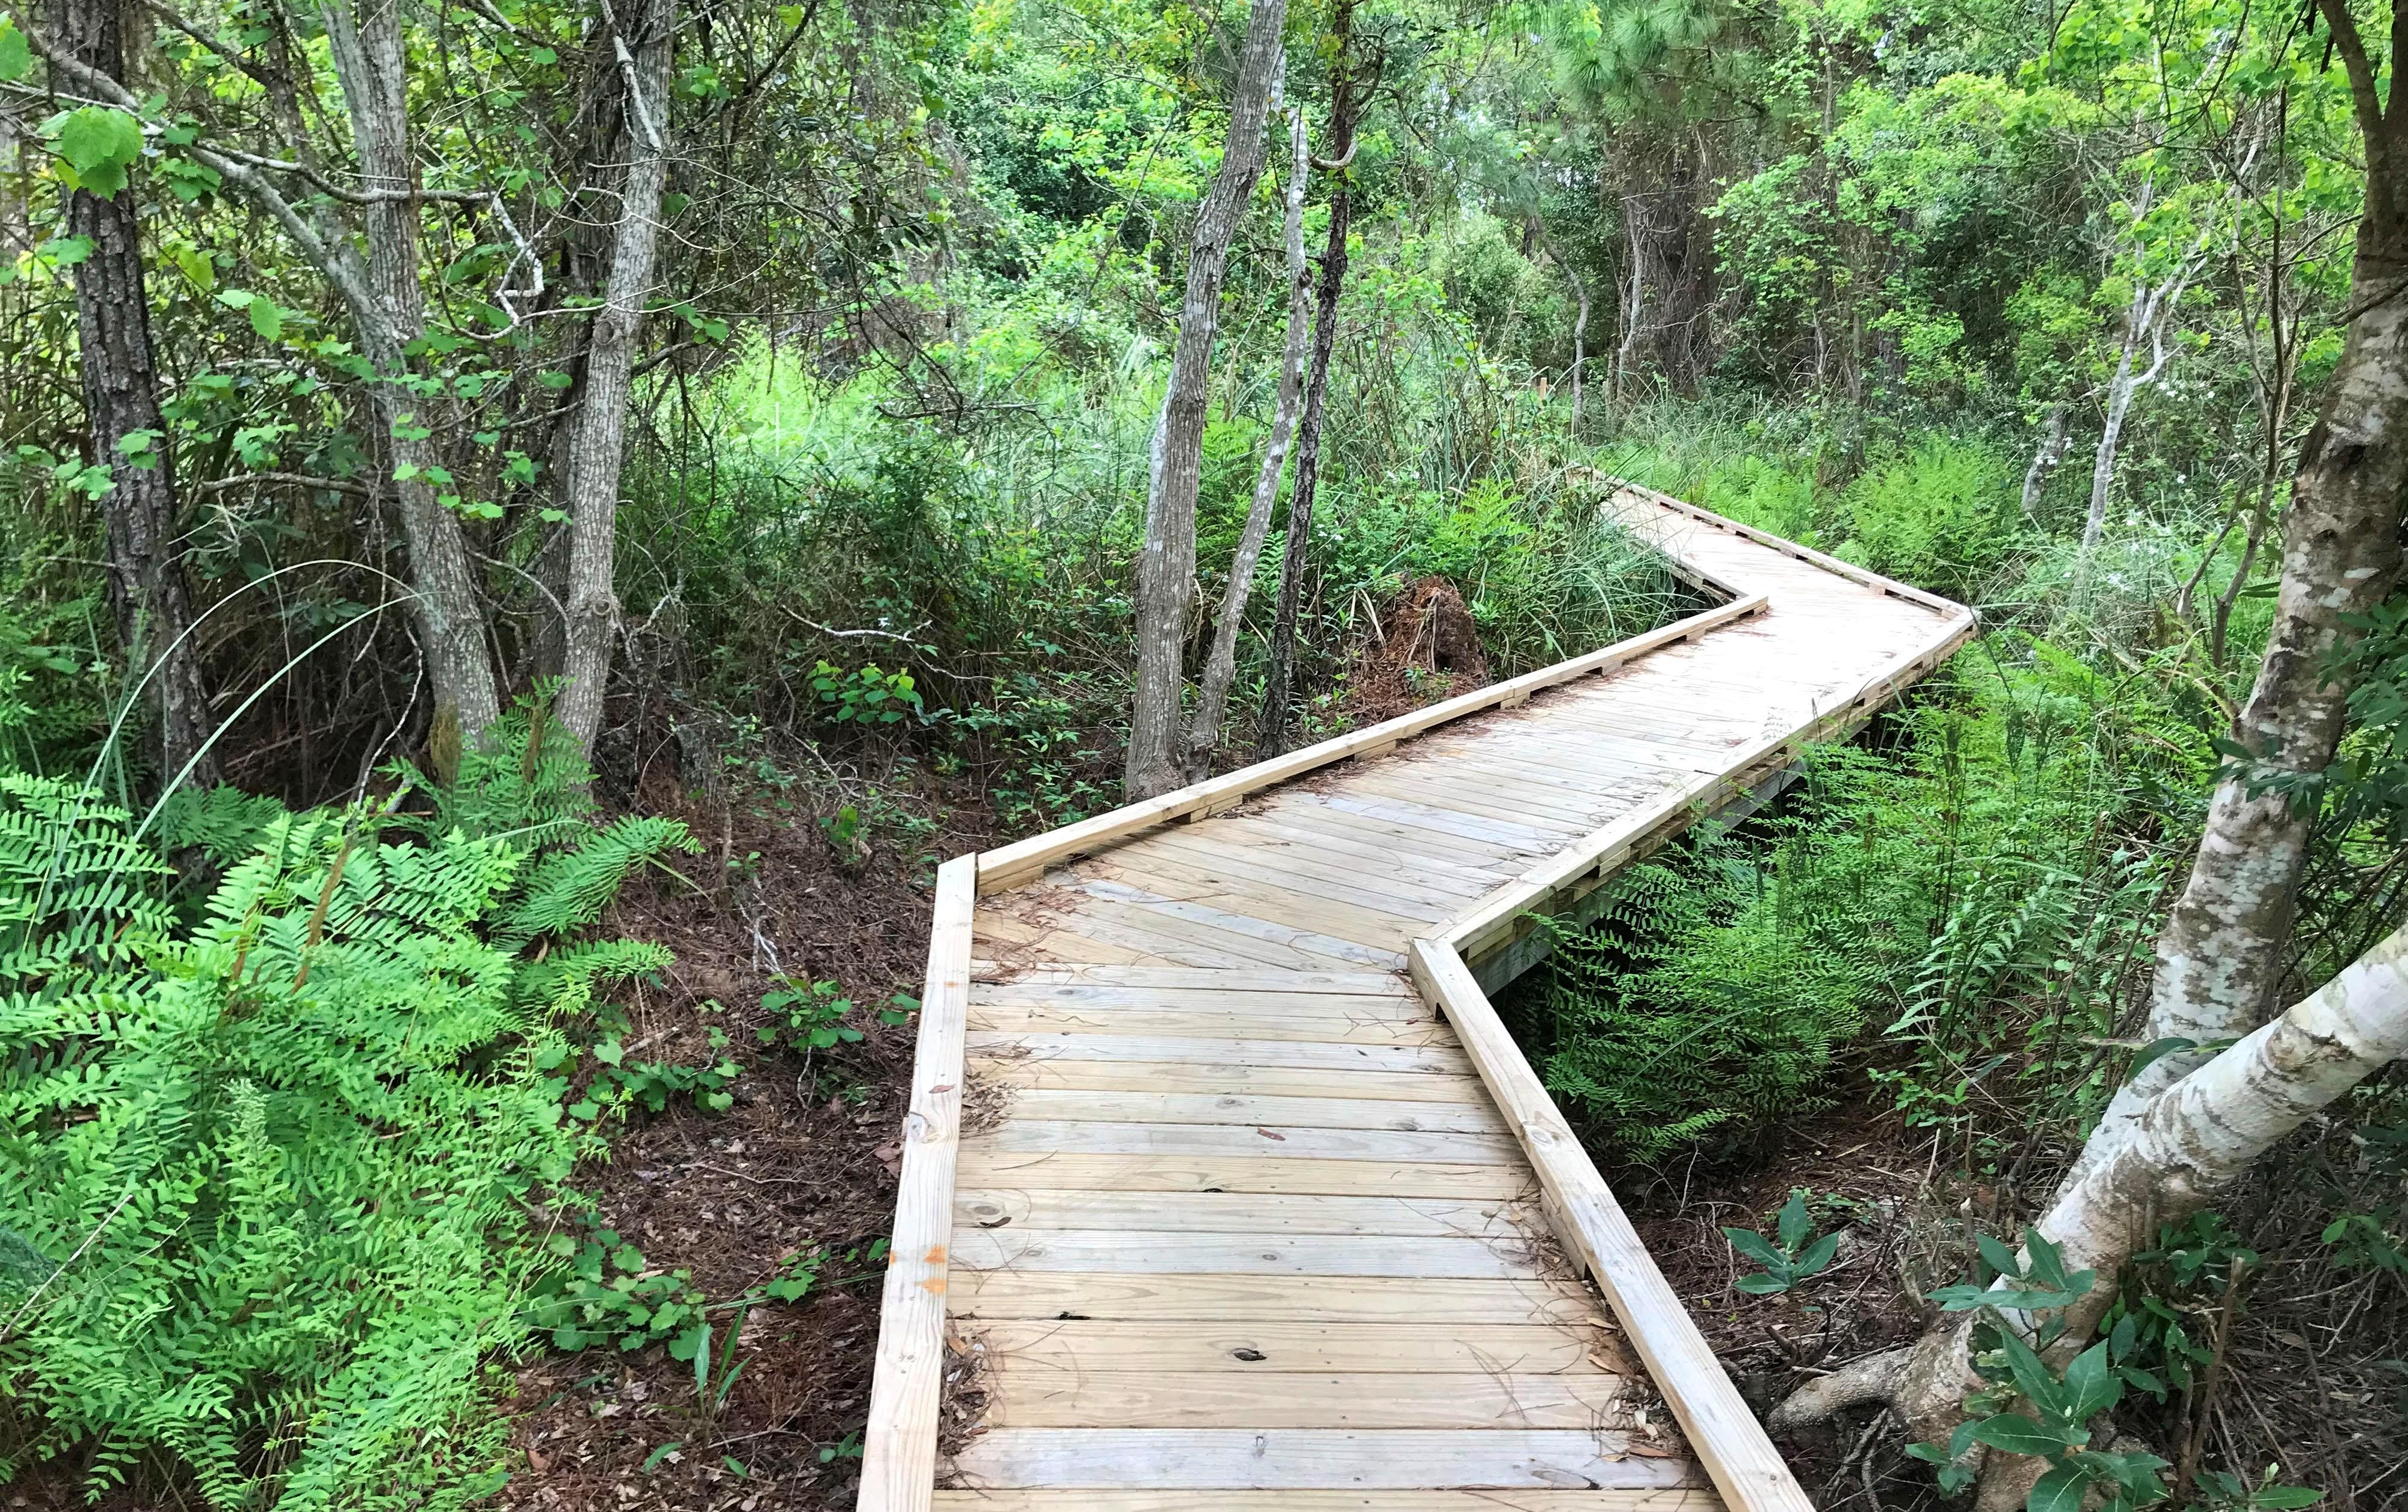 Middle Lake Overlook Boardwalk